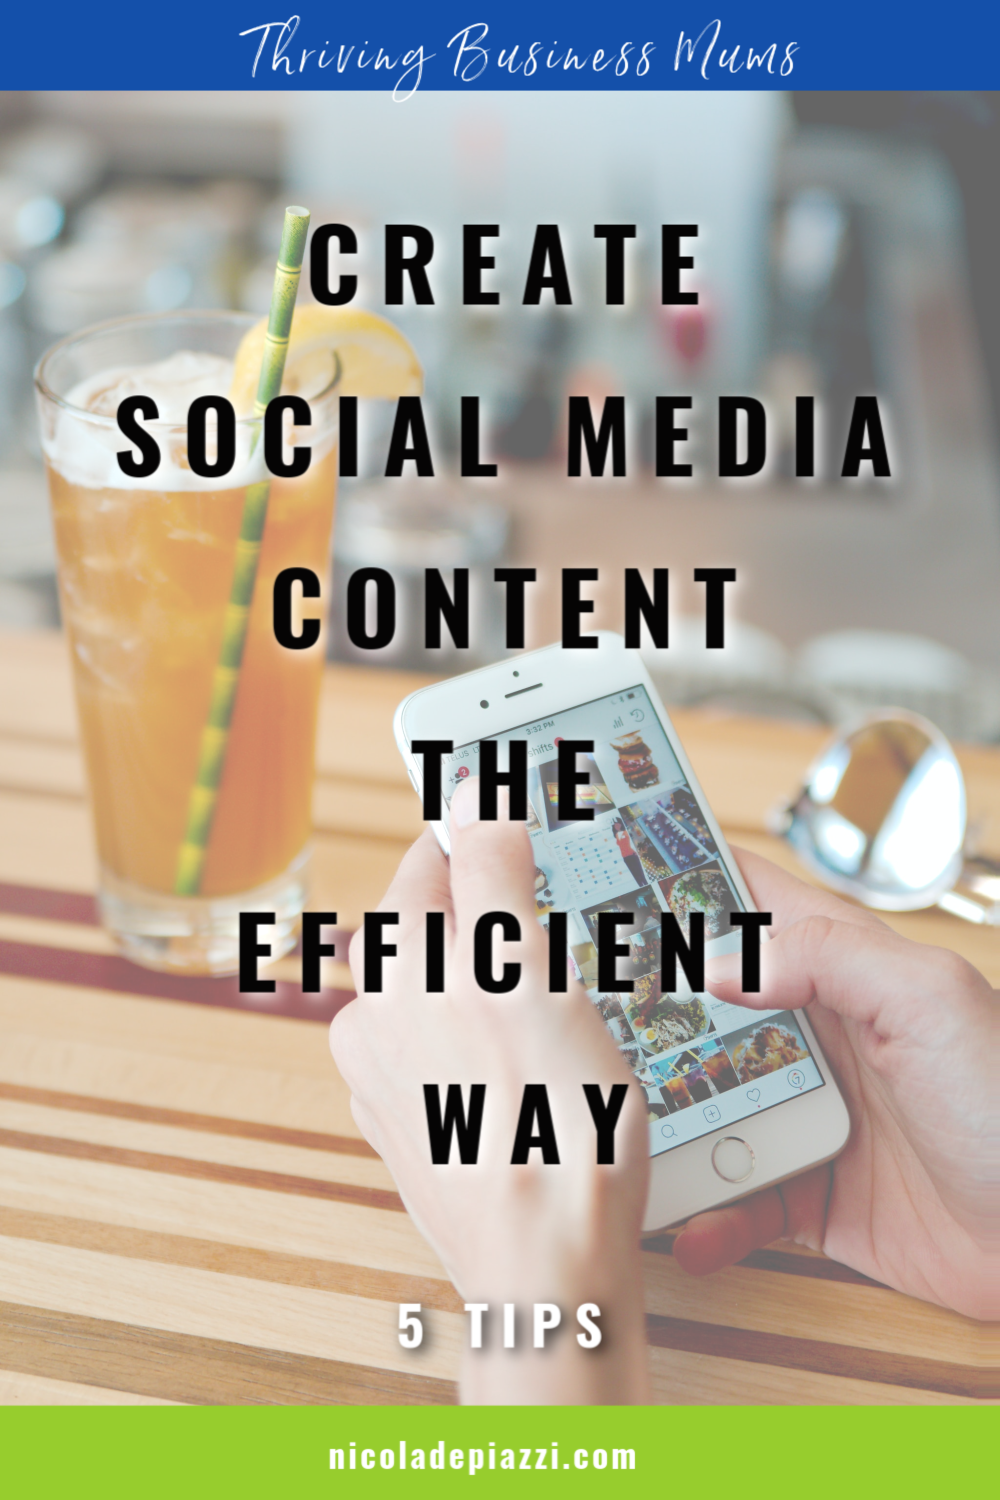 EFFICIENT CONTENT FOR SOCIAL MEDIA